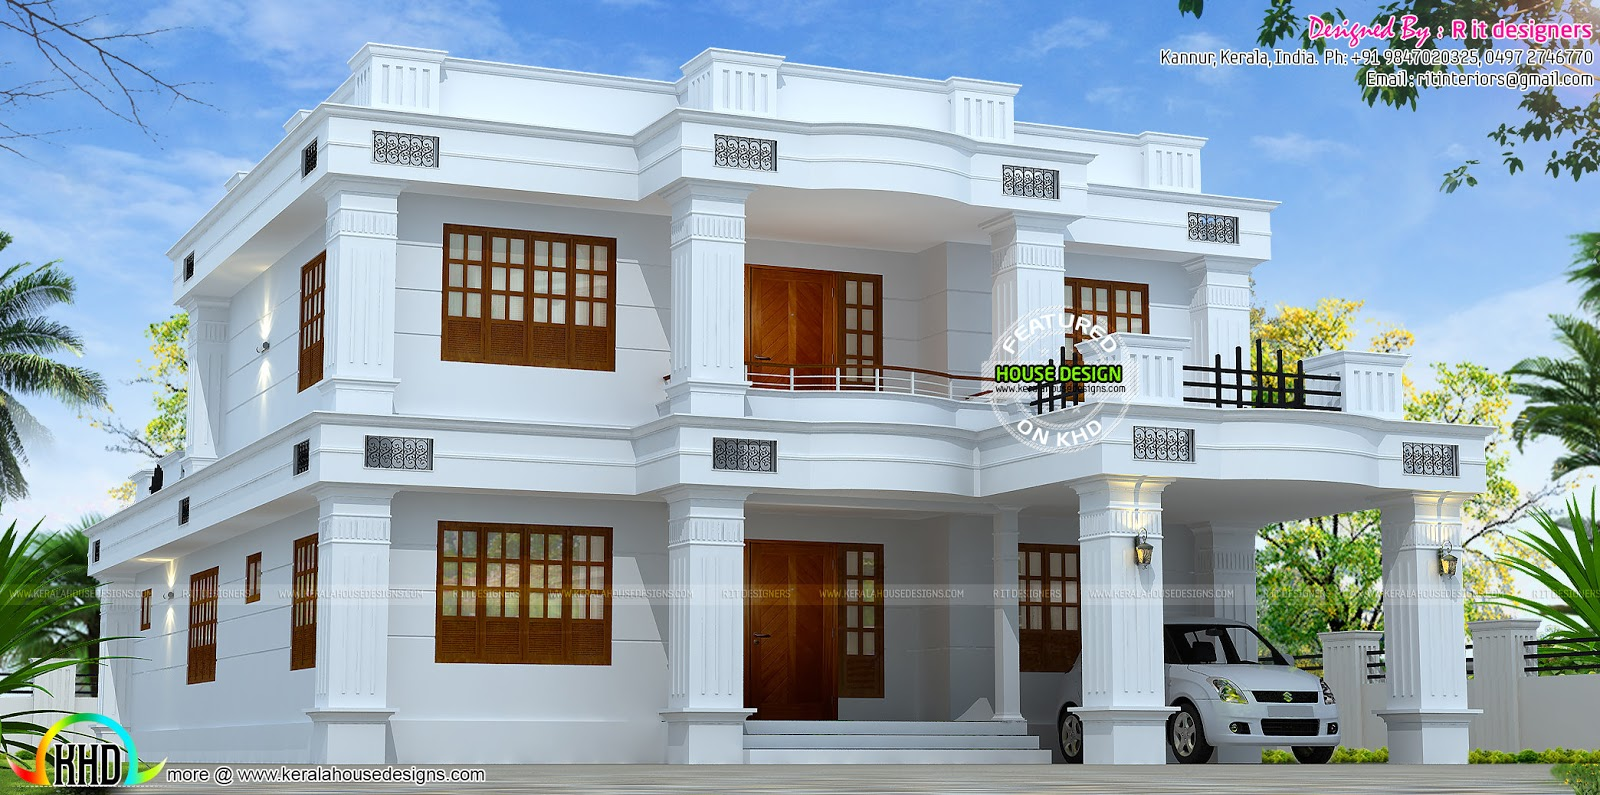 February 2016 kerala home design and floor plans for Home designs in kerala